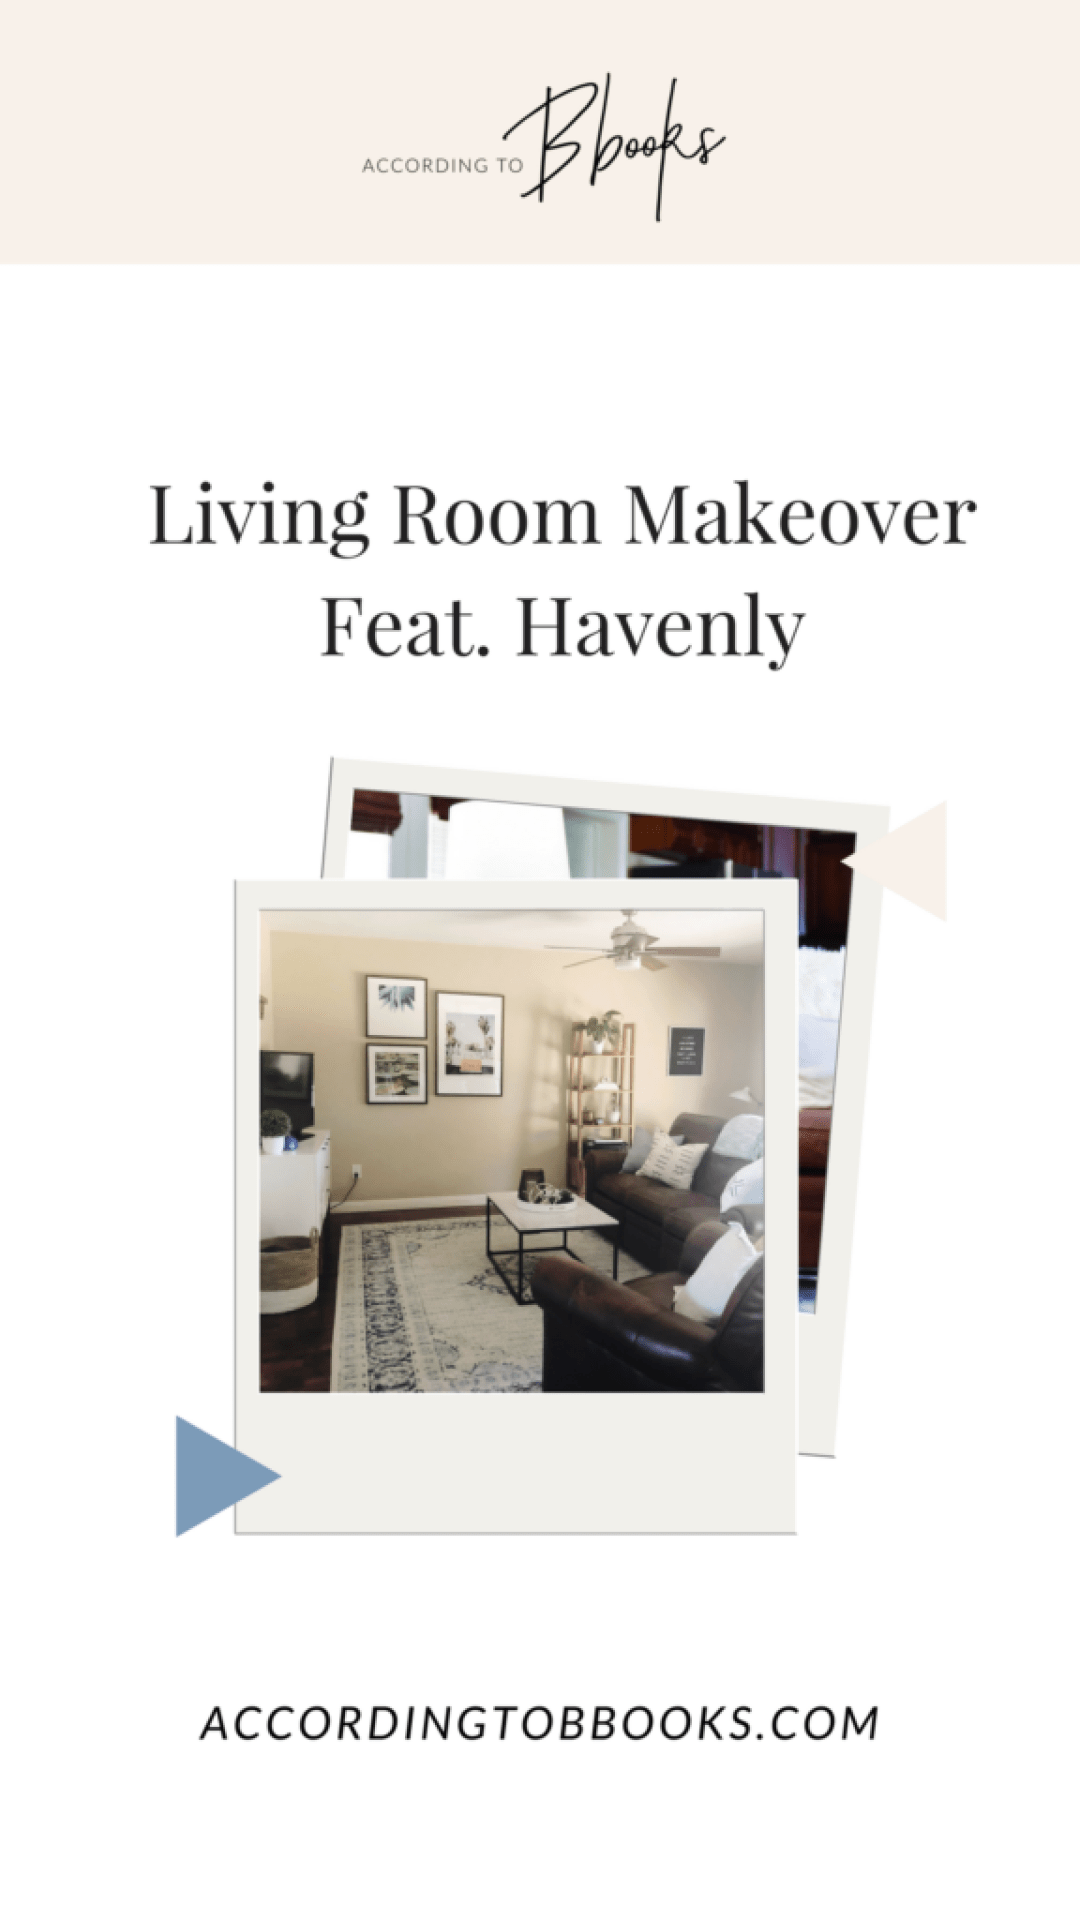 Living Room Makeover With Havenly - According To Bbooks